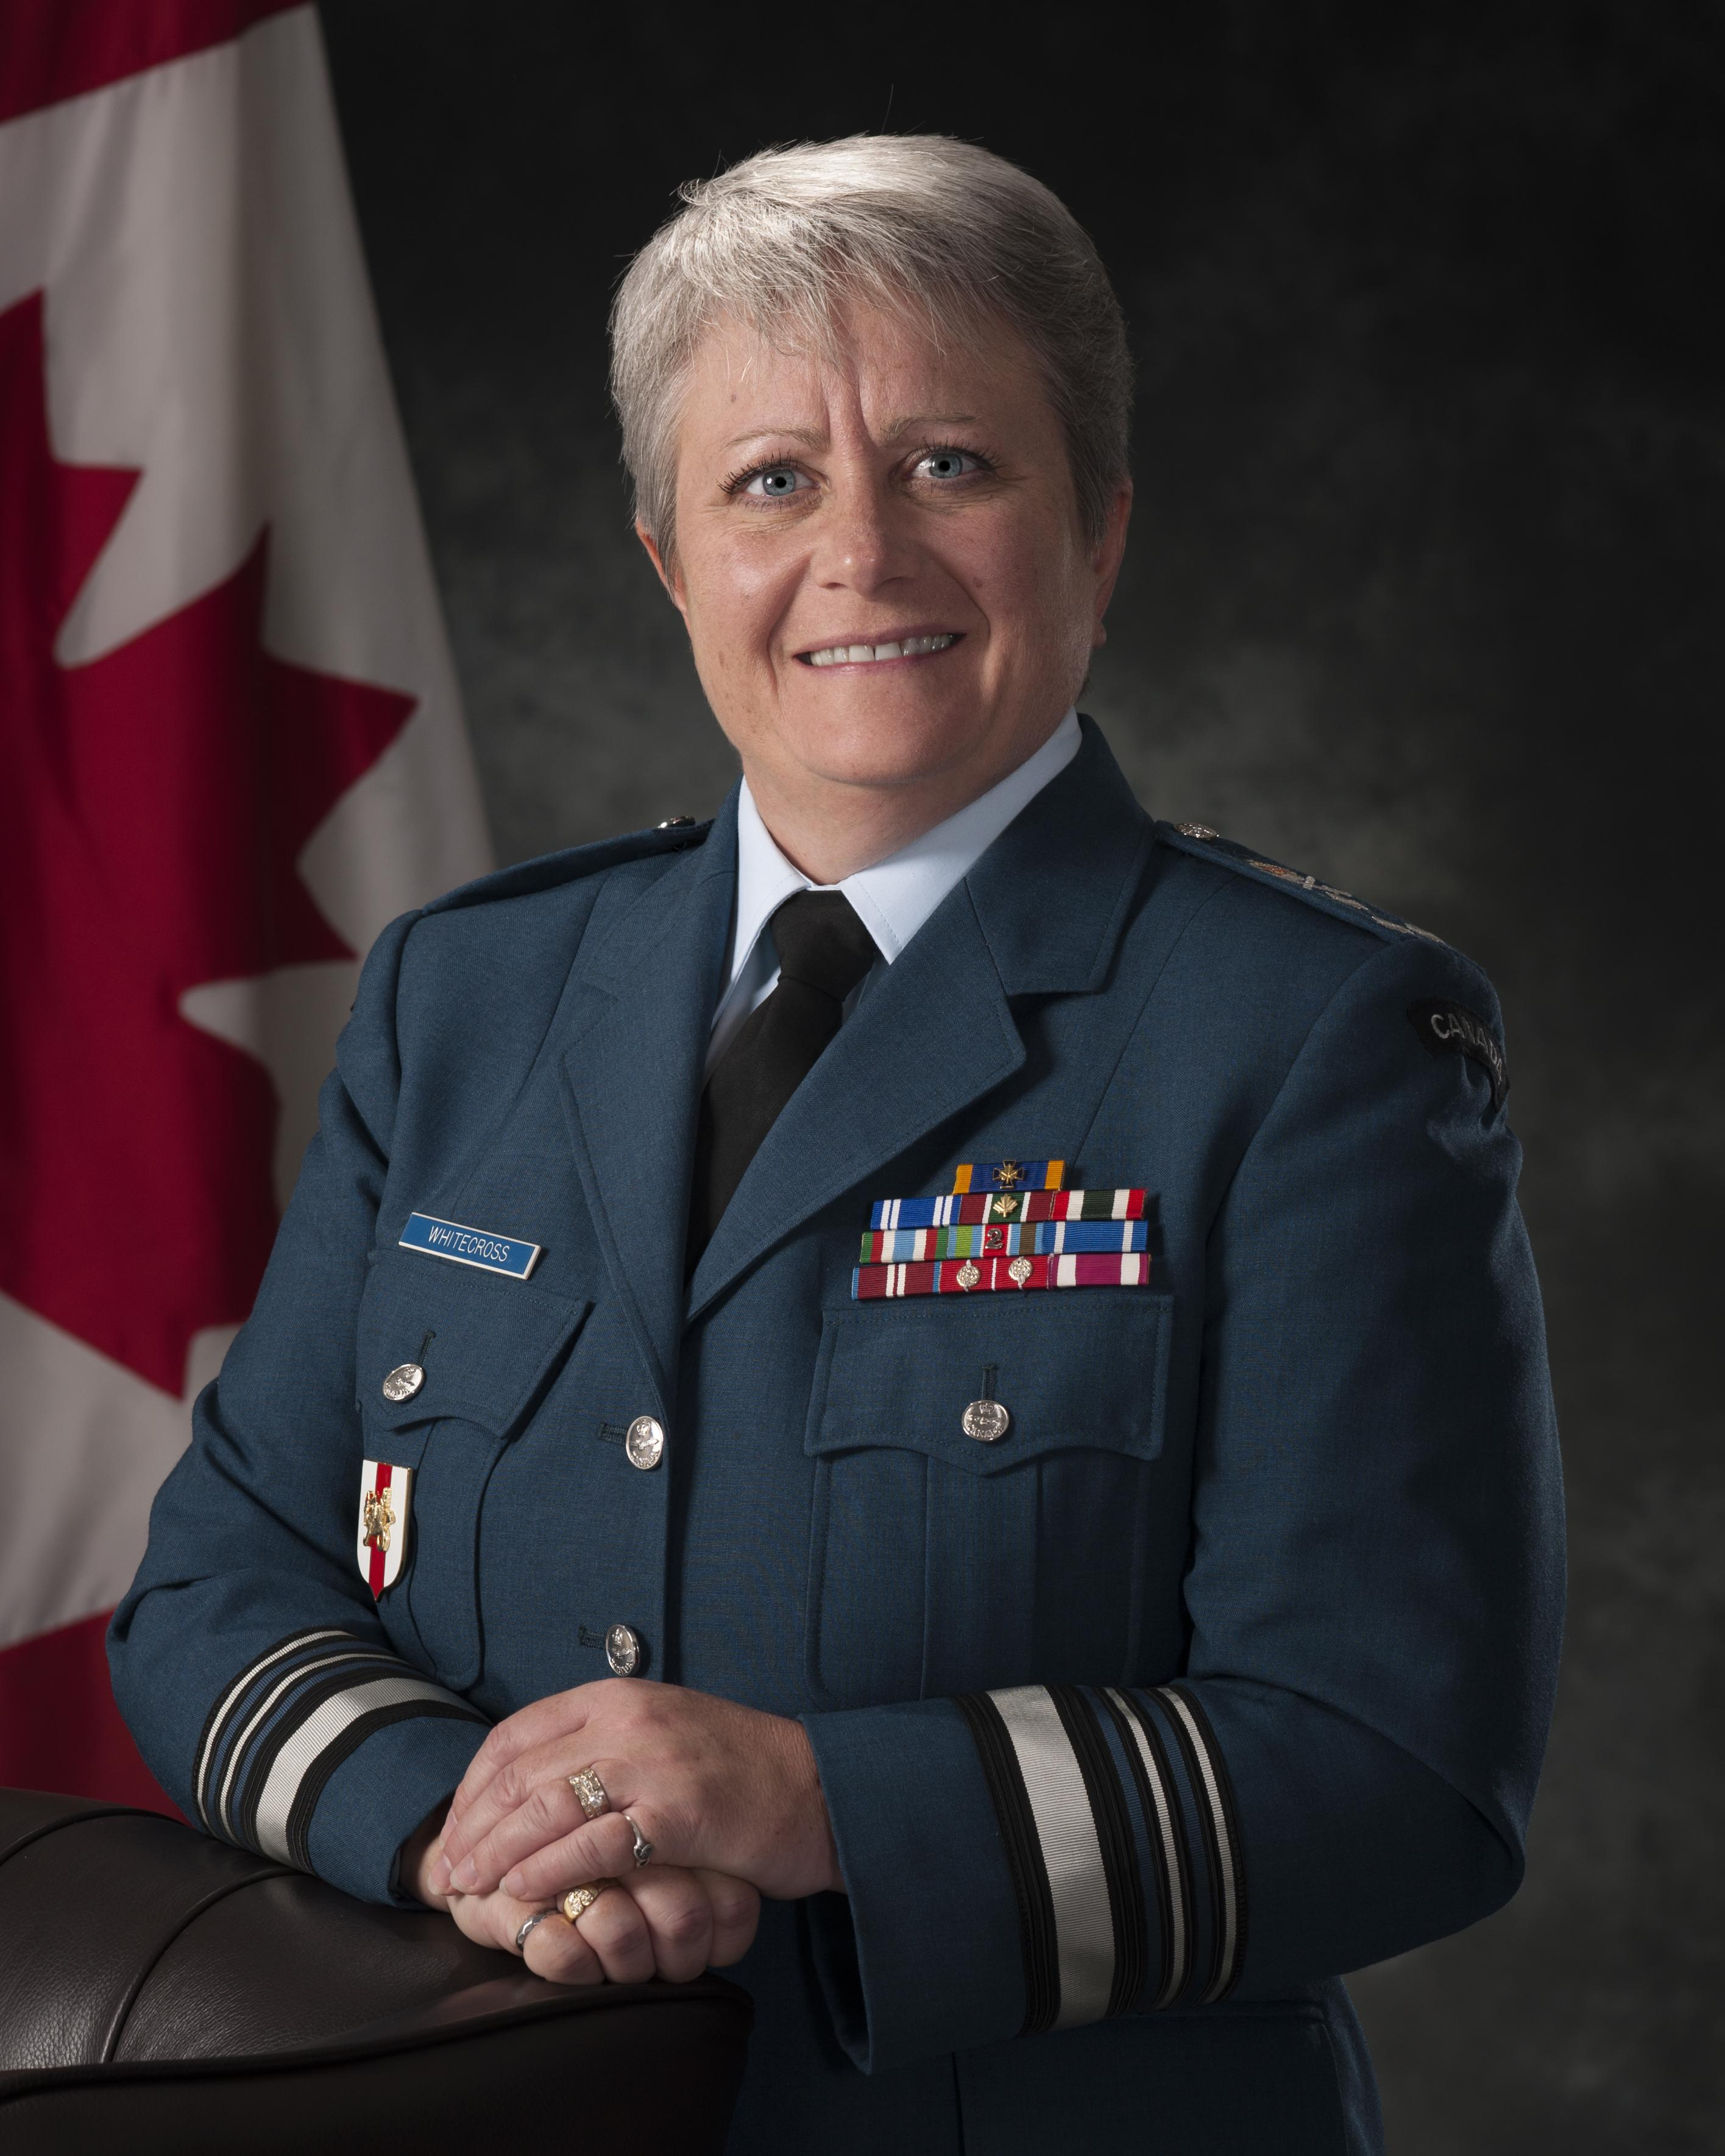 Lieutenant-General Christine Whitecross is the first woman to be promoted to that rank in the Canadian Armed Forces. She is currently the commander of Military Personnel Command. PHOTO: DND